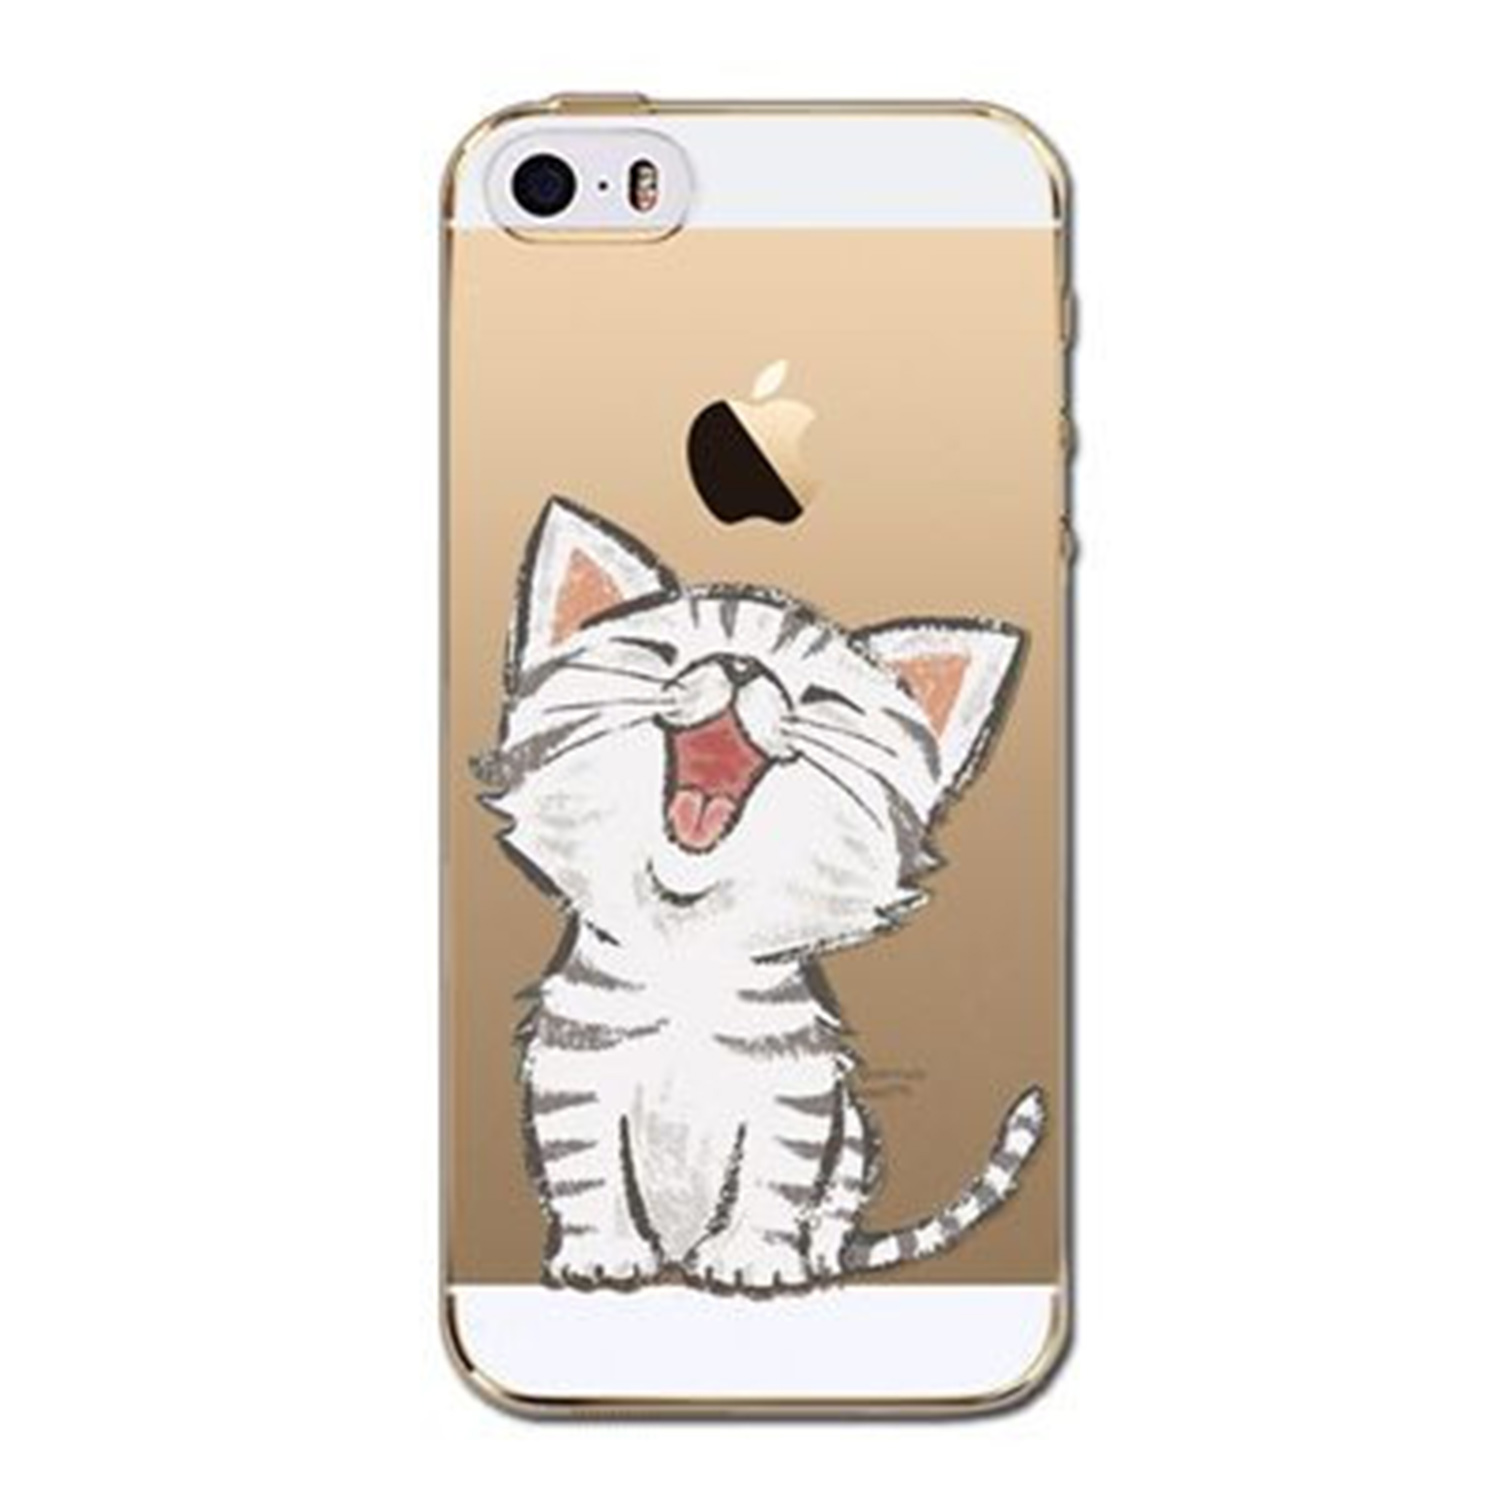 Kritzel Case iPhone 5s / SE - Kitty Collection #405